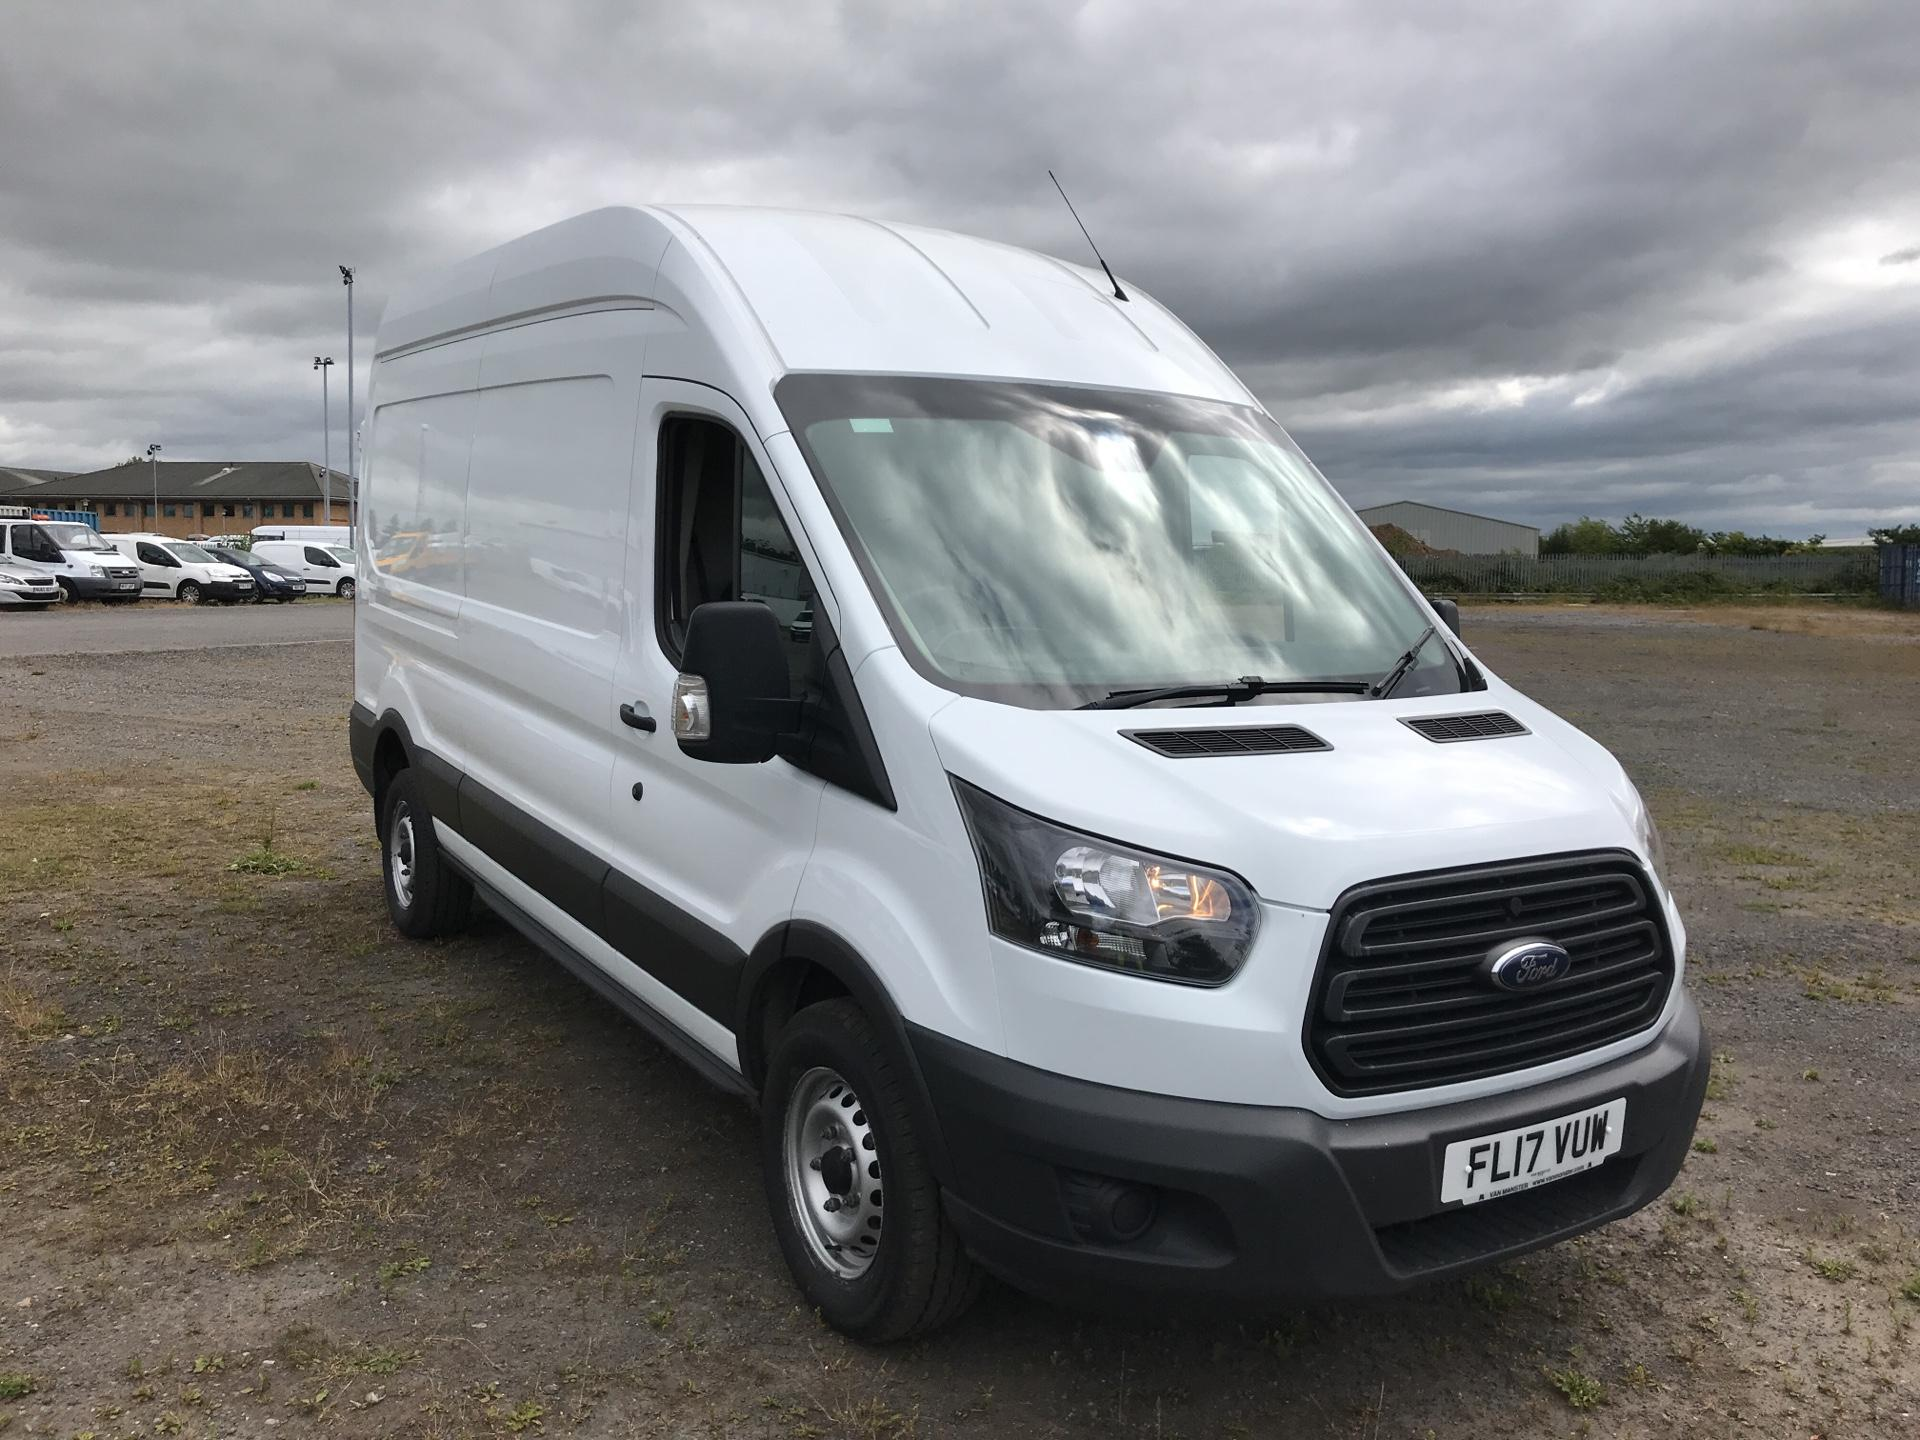 2017 Ford Transit 2.0 Tdci 130Ps H3 Van *VALUE RANGE VEHICLE CONDITION REFLECTED IN PRICE* (FL17VUW)